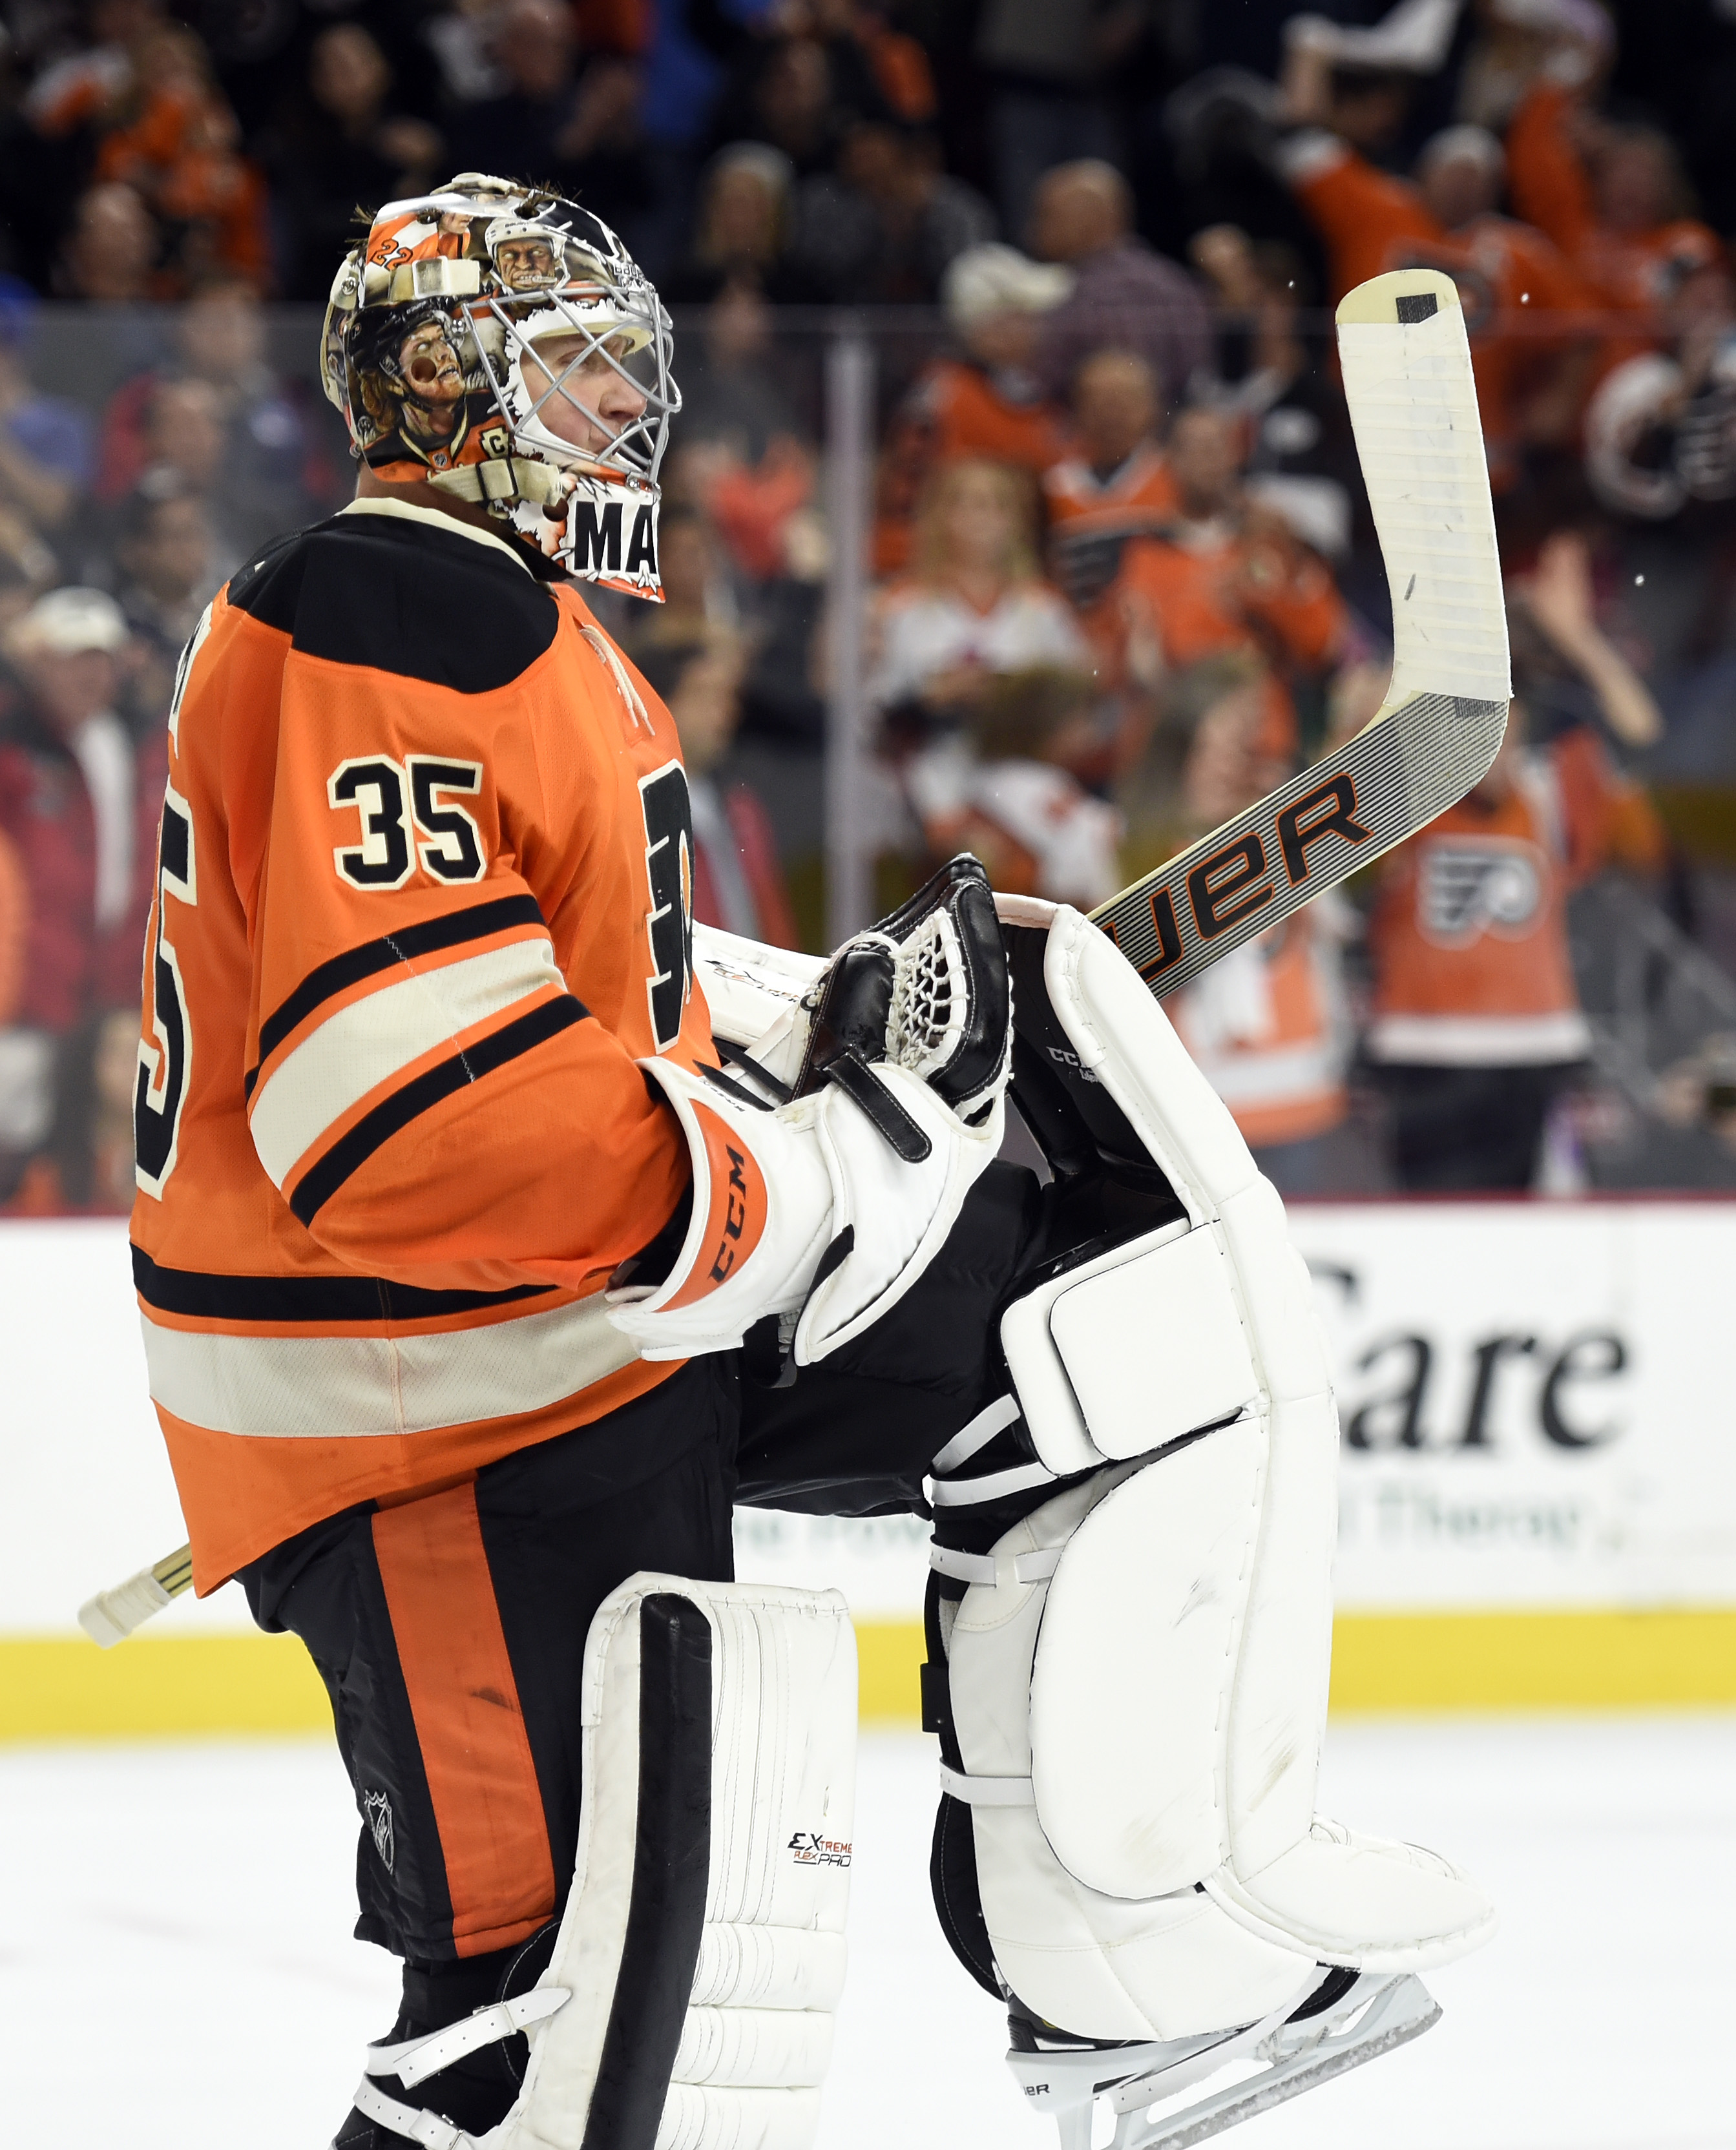 Philadelphia Flyers goalie Steve Mason (35) celebrates after he blocks a shot from New York Rangers' Dominic Moore during a shoot out in an NHL hockey game, Saturday, Oct. 24, 2015, in Philadelphia. The Flyers won 3-2. (AP Photo/Michael Perez)